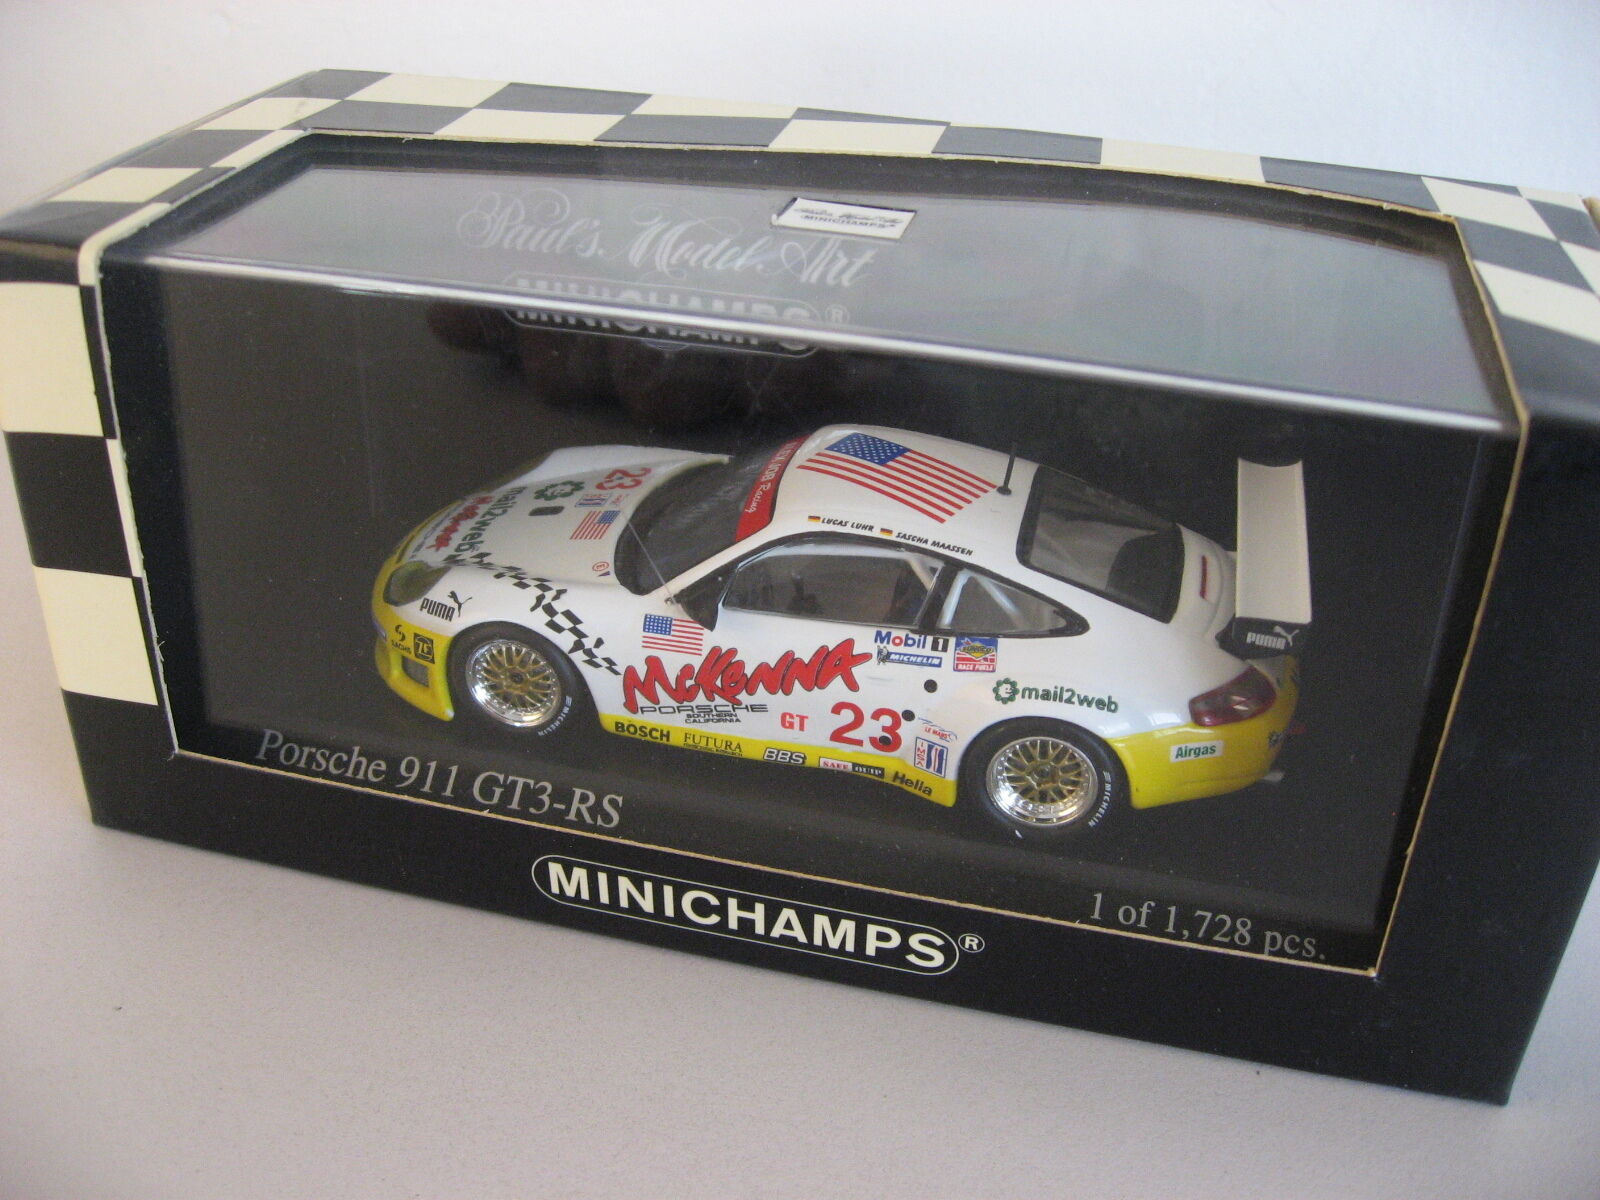 2003 Porsche 996 911 GT3 RS Sebring 12 hr winner 1 of only 1,728 1:43 Minichamps